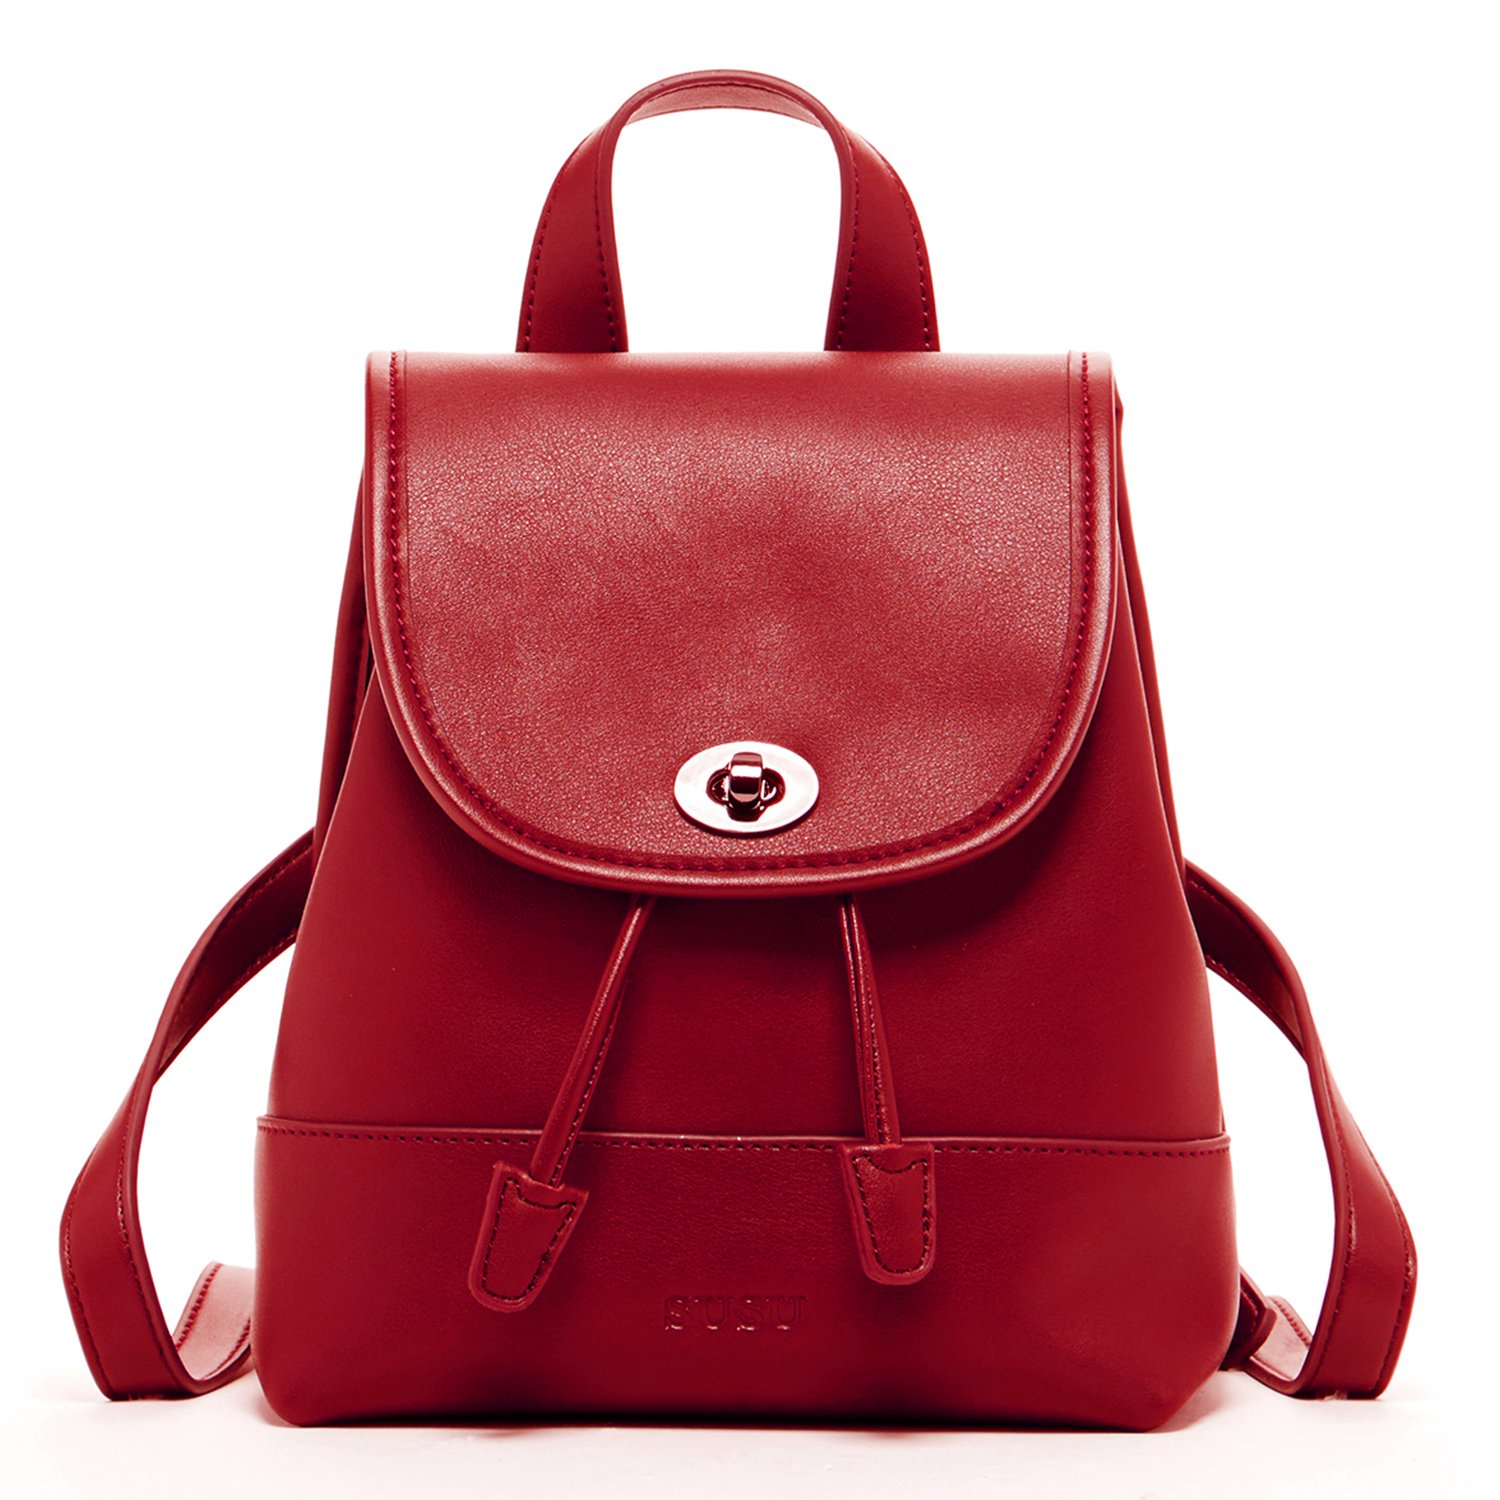 Leather Backpack Purse for Women - Small Red Womens Backpacks Trendy Back pack Luxury Fashion Designer Vintage Style Fancy Stylish It Bag Cute Pocket Book With Drawstring and Flap Buckle Closure